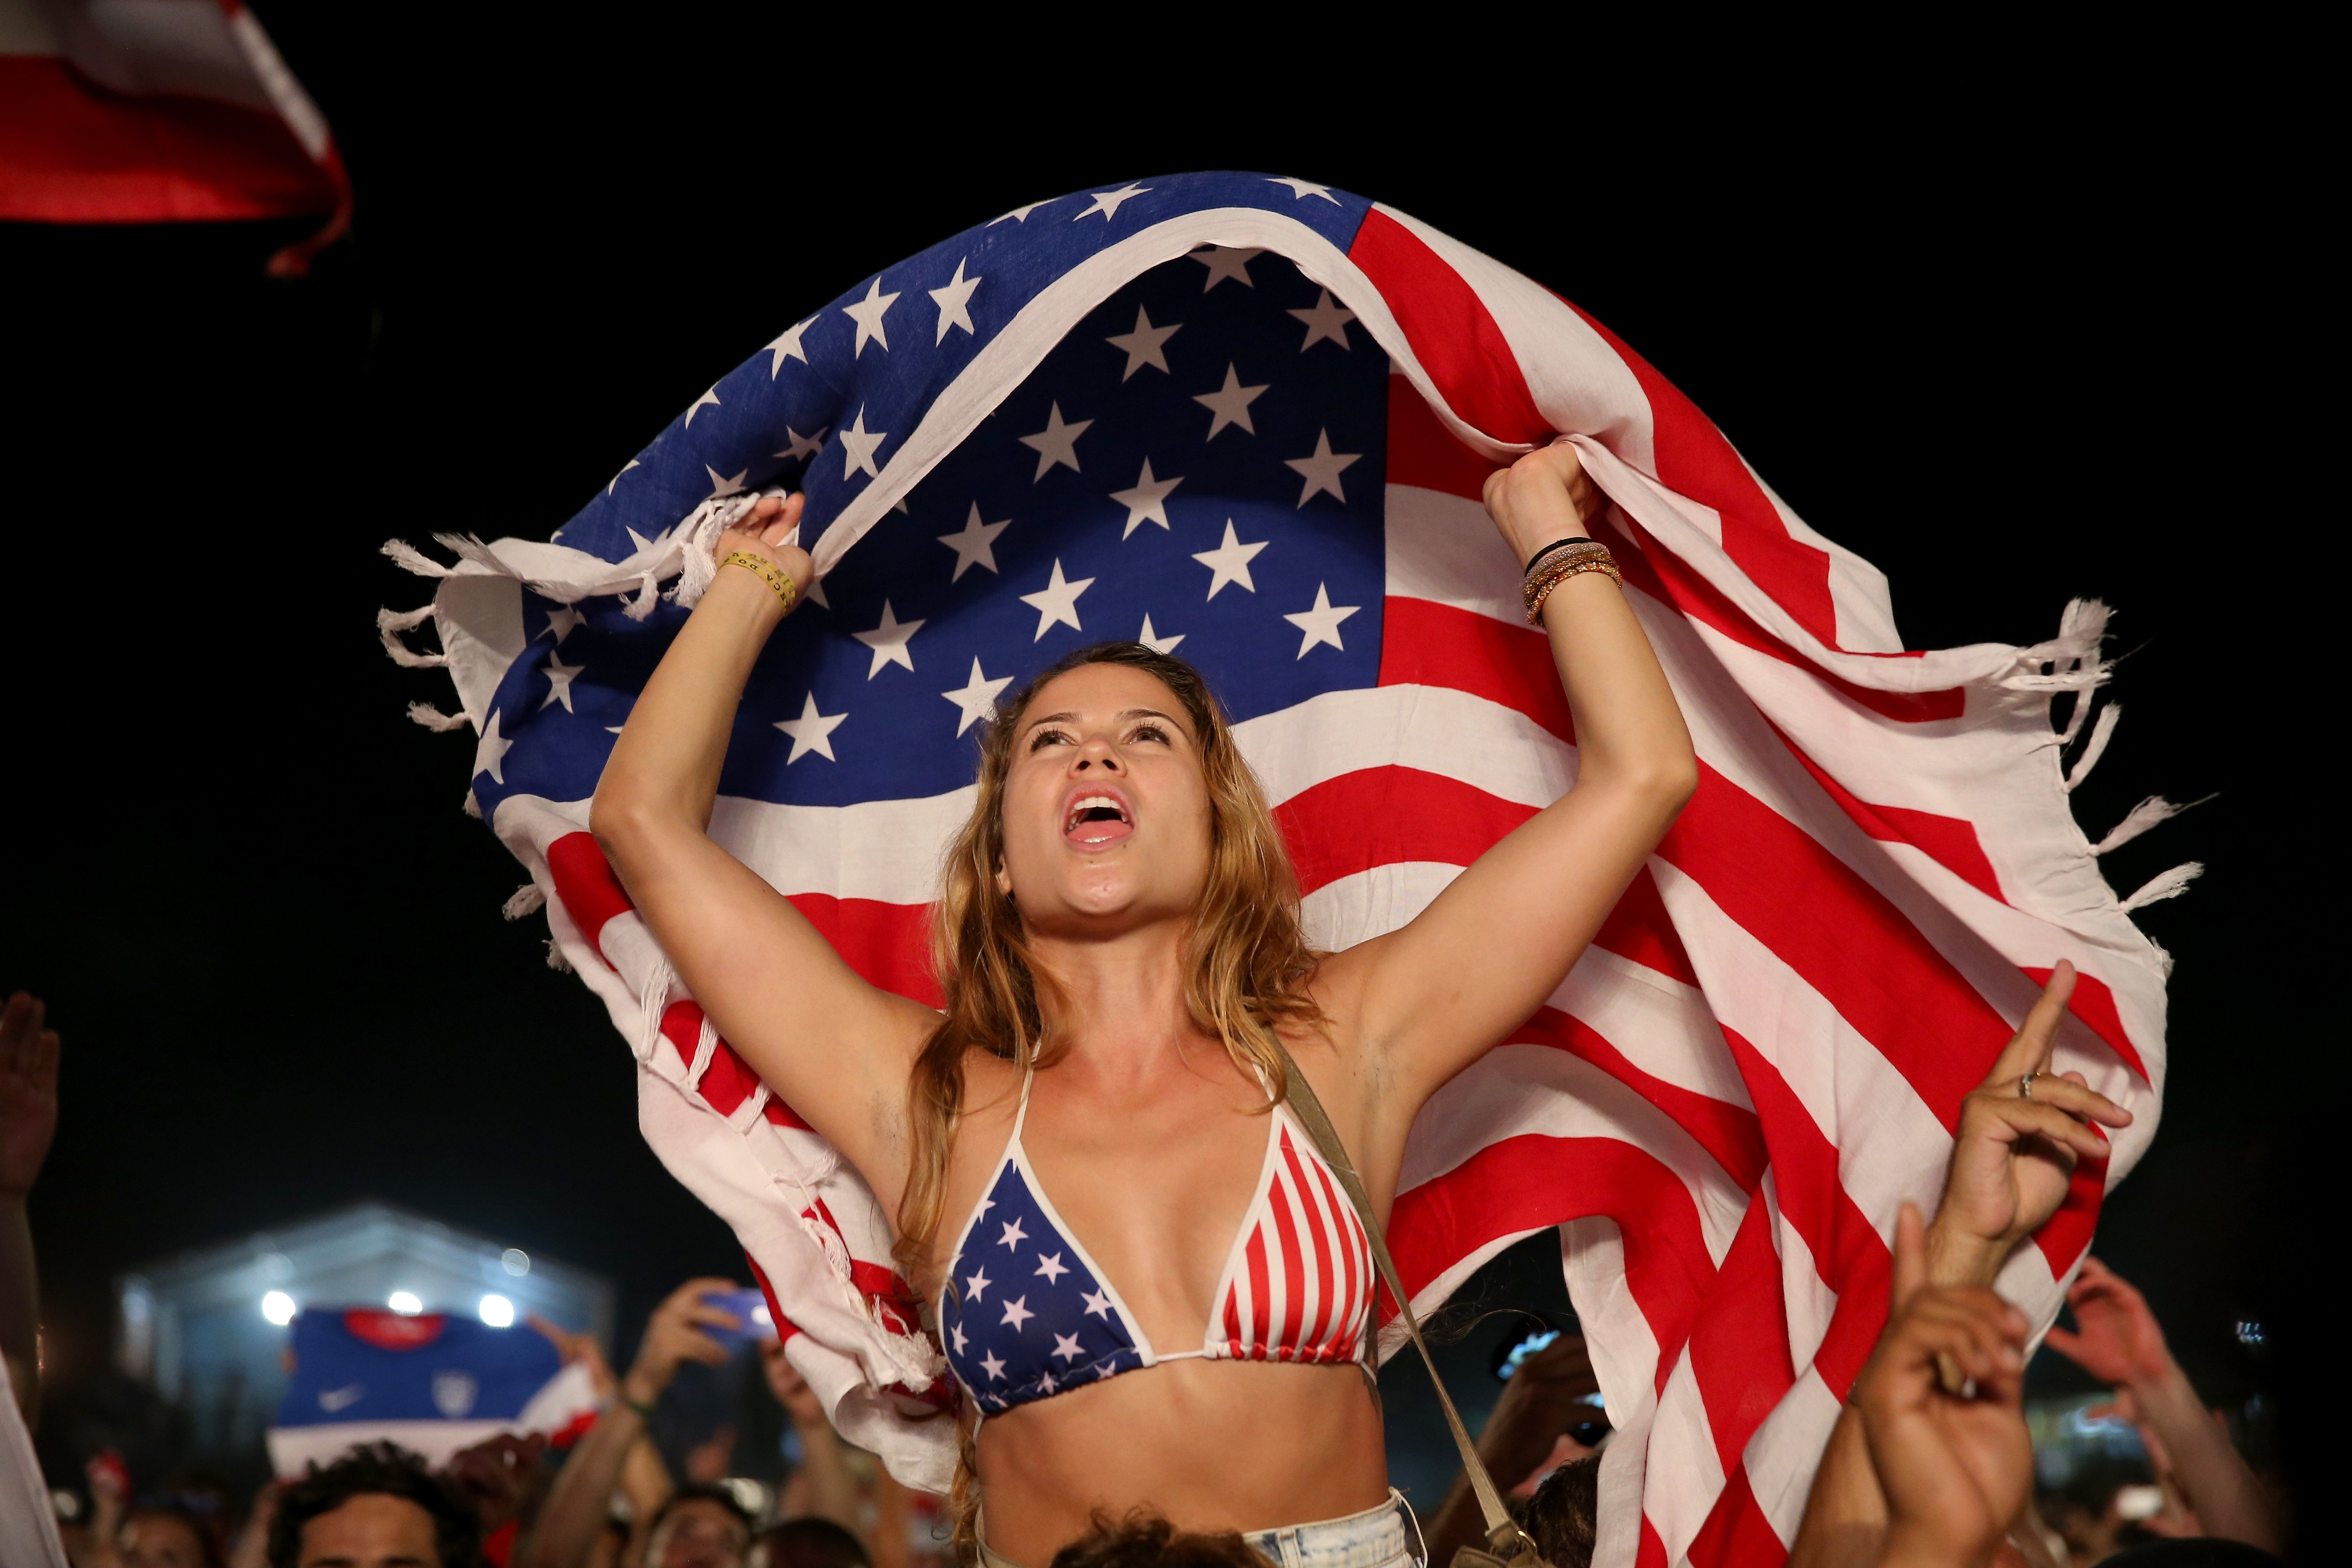 American soccer fans react to their team beating Ghana 2-1 as they watch on a large screen at the FIFA World Cup Fan Fest on Copacabana beach on June 16, 2014 in Rio de Janeiro.